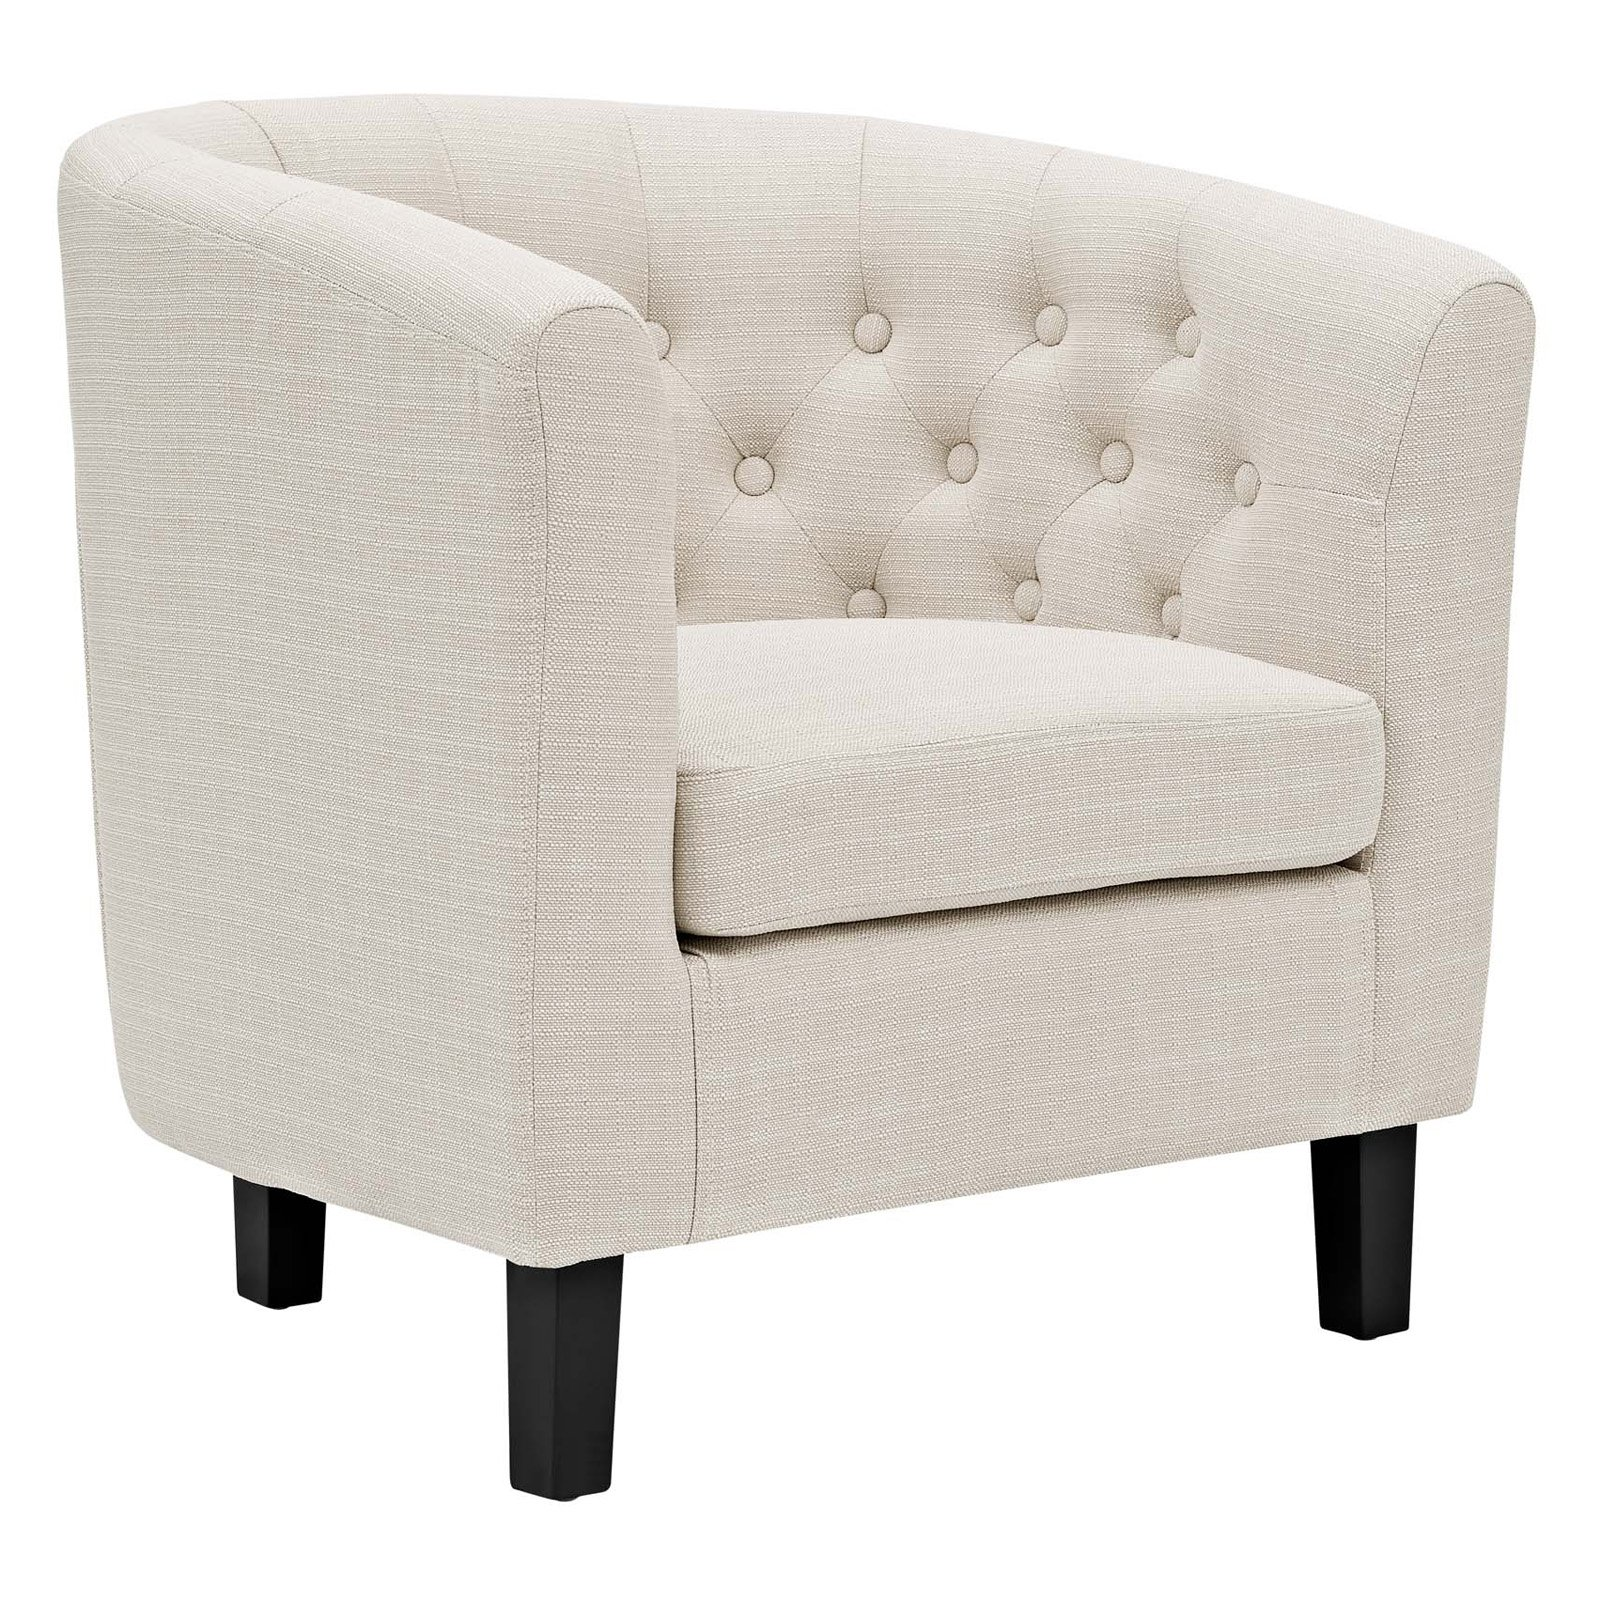 Modway Prospect Upholstered Armchair, Multiple Colors by Modway